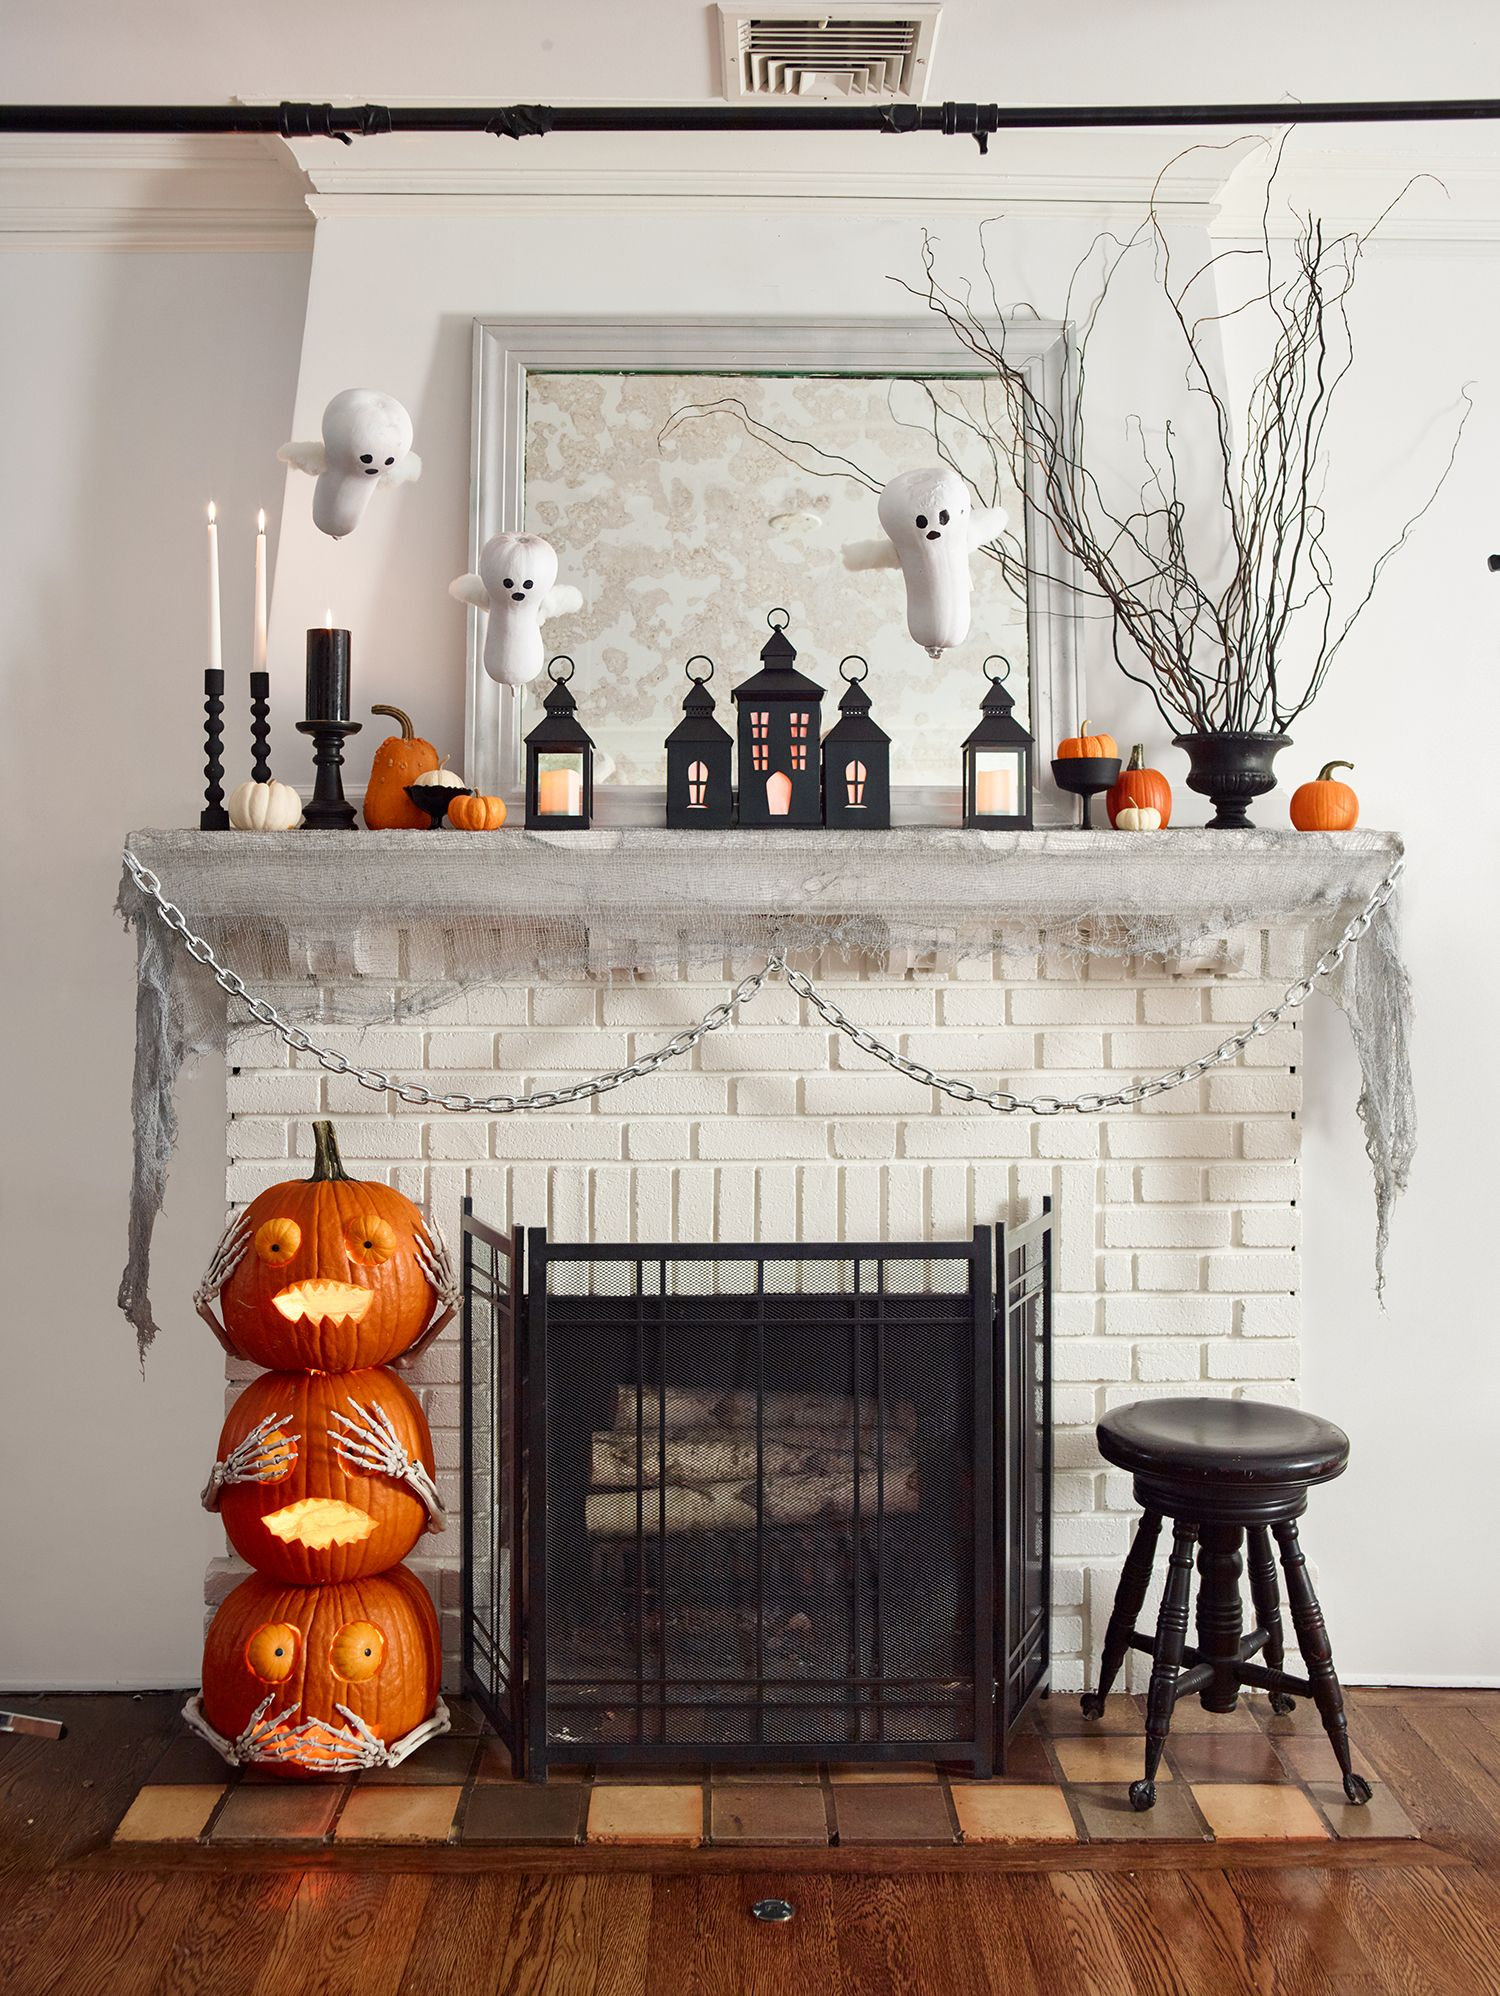 White Concrete Mantel Sitting on Painted Brick